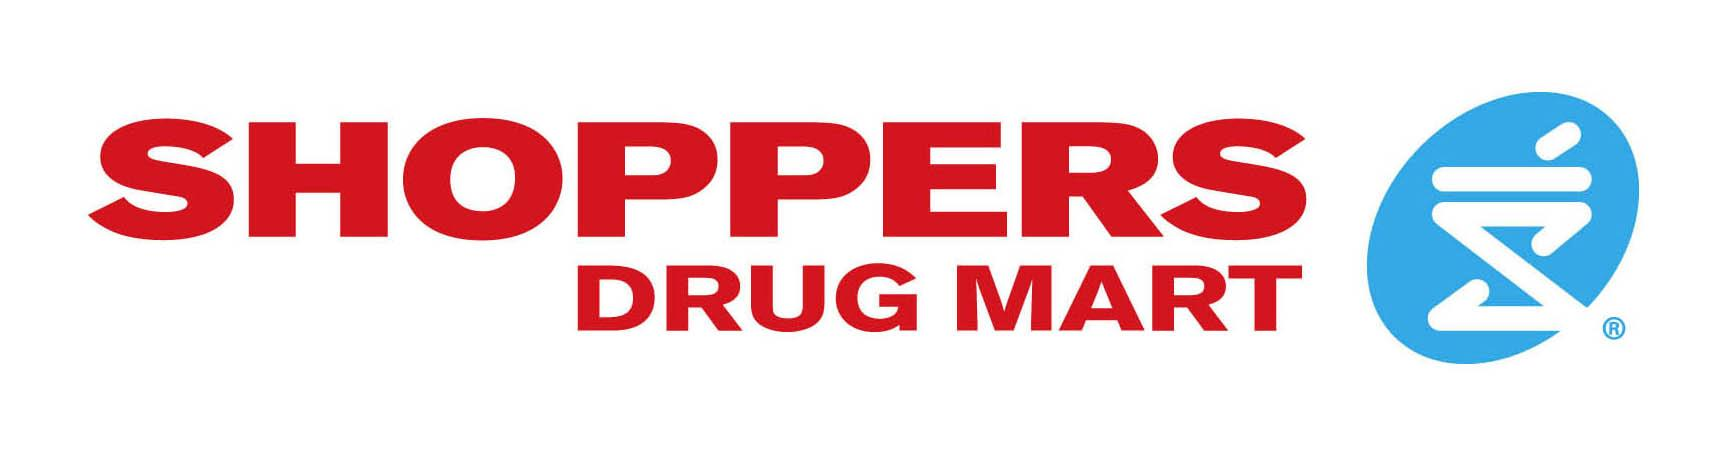 Shoppers-Drug-Mart-Logo-1.jpg